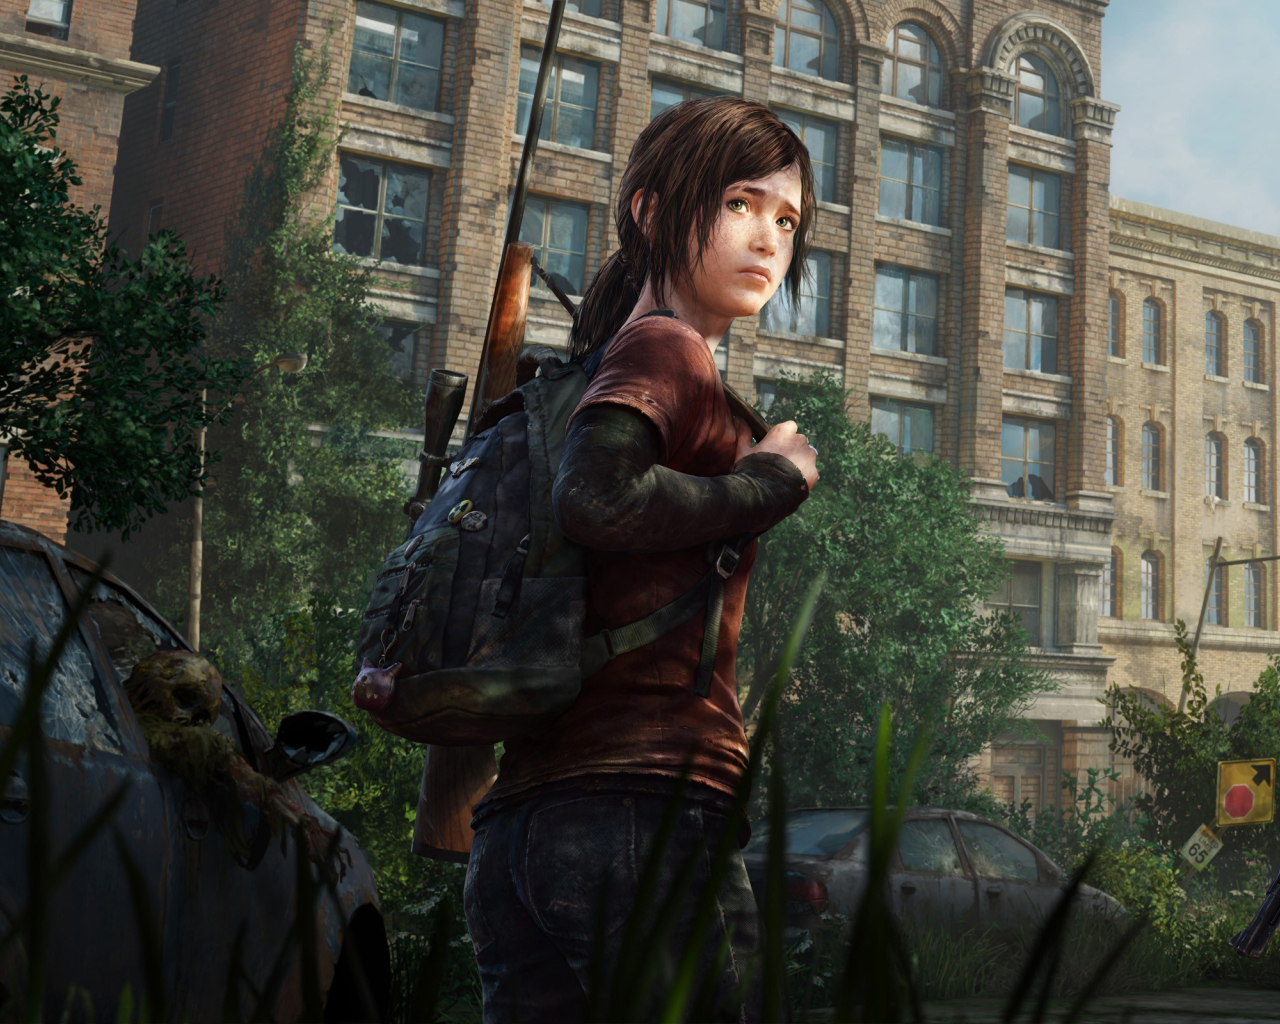 1280x1024 The Last Of Us 1280x1024 Resolution Wallpaper Hd Games